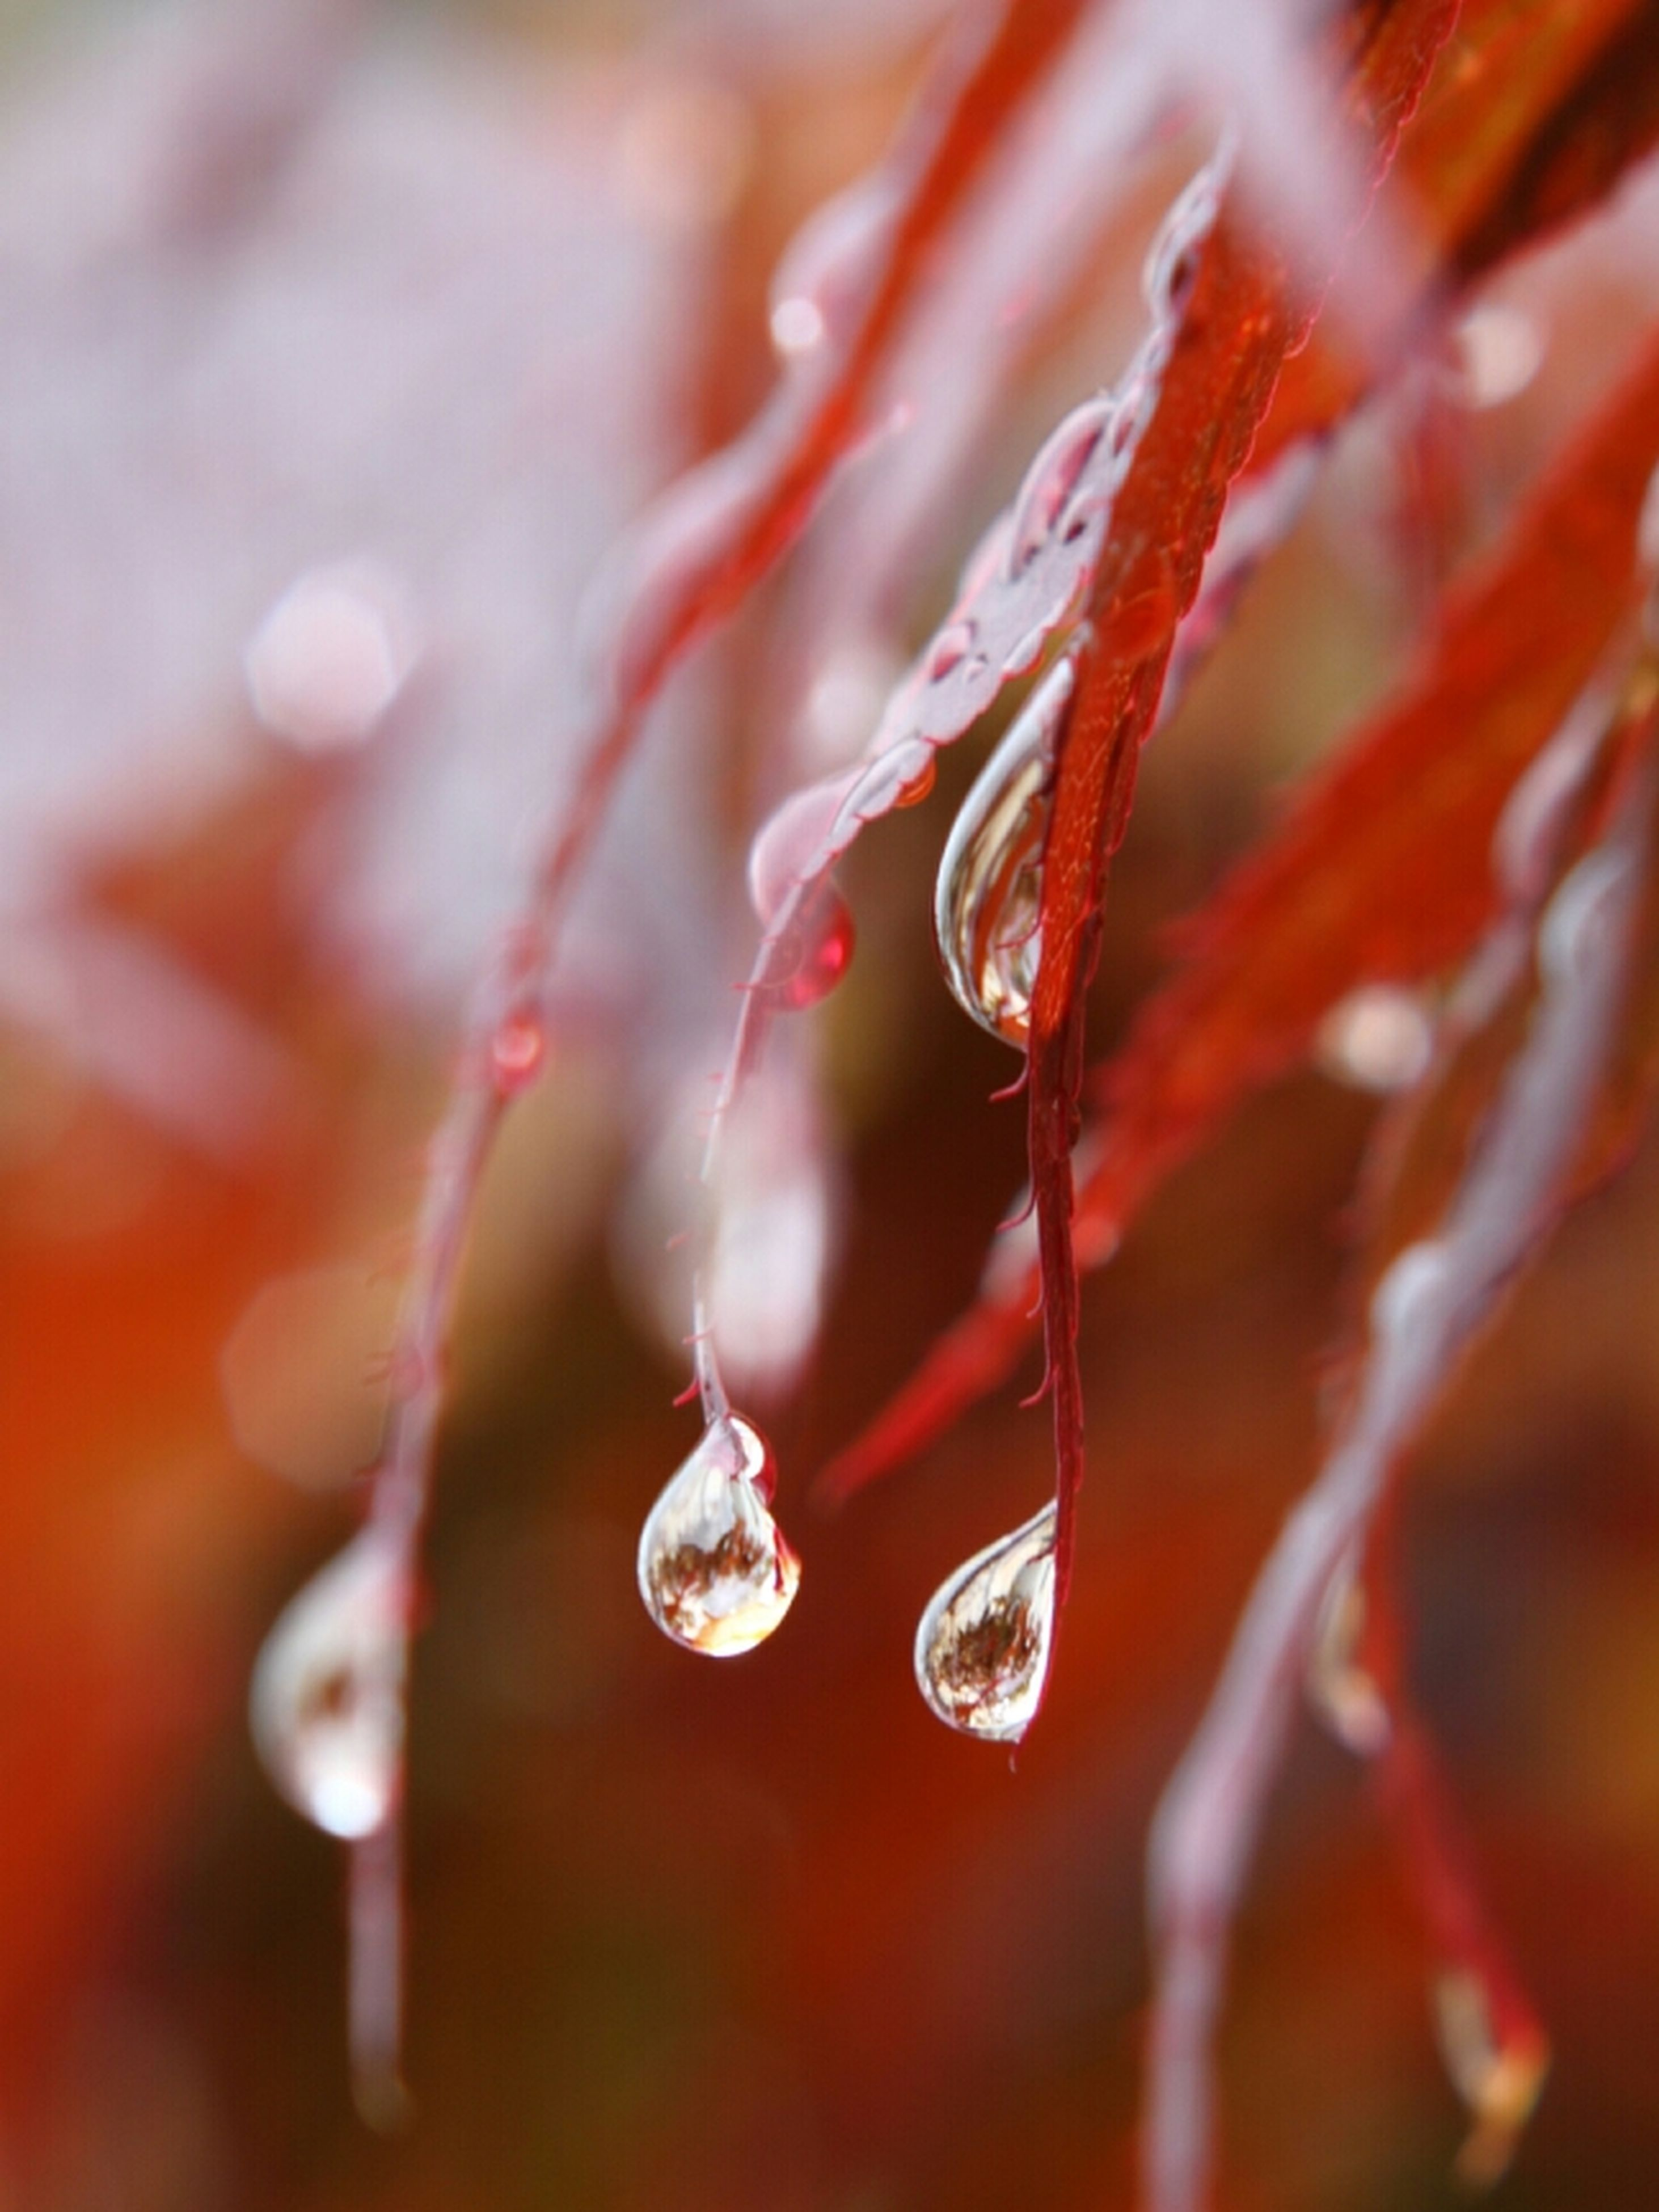 drop, water, close-up, wet, fragility, focus on foreground, selective focus, freshness, dew, nature, beauty in nature, growth, purity, plant, raindrop, rain, season, droplet, twig, detail